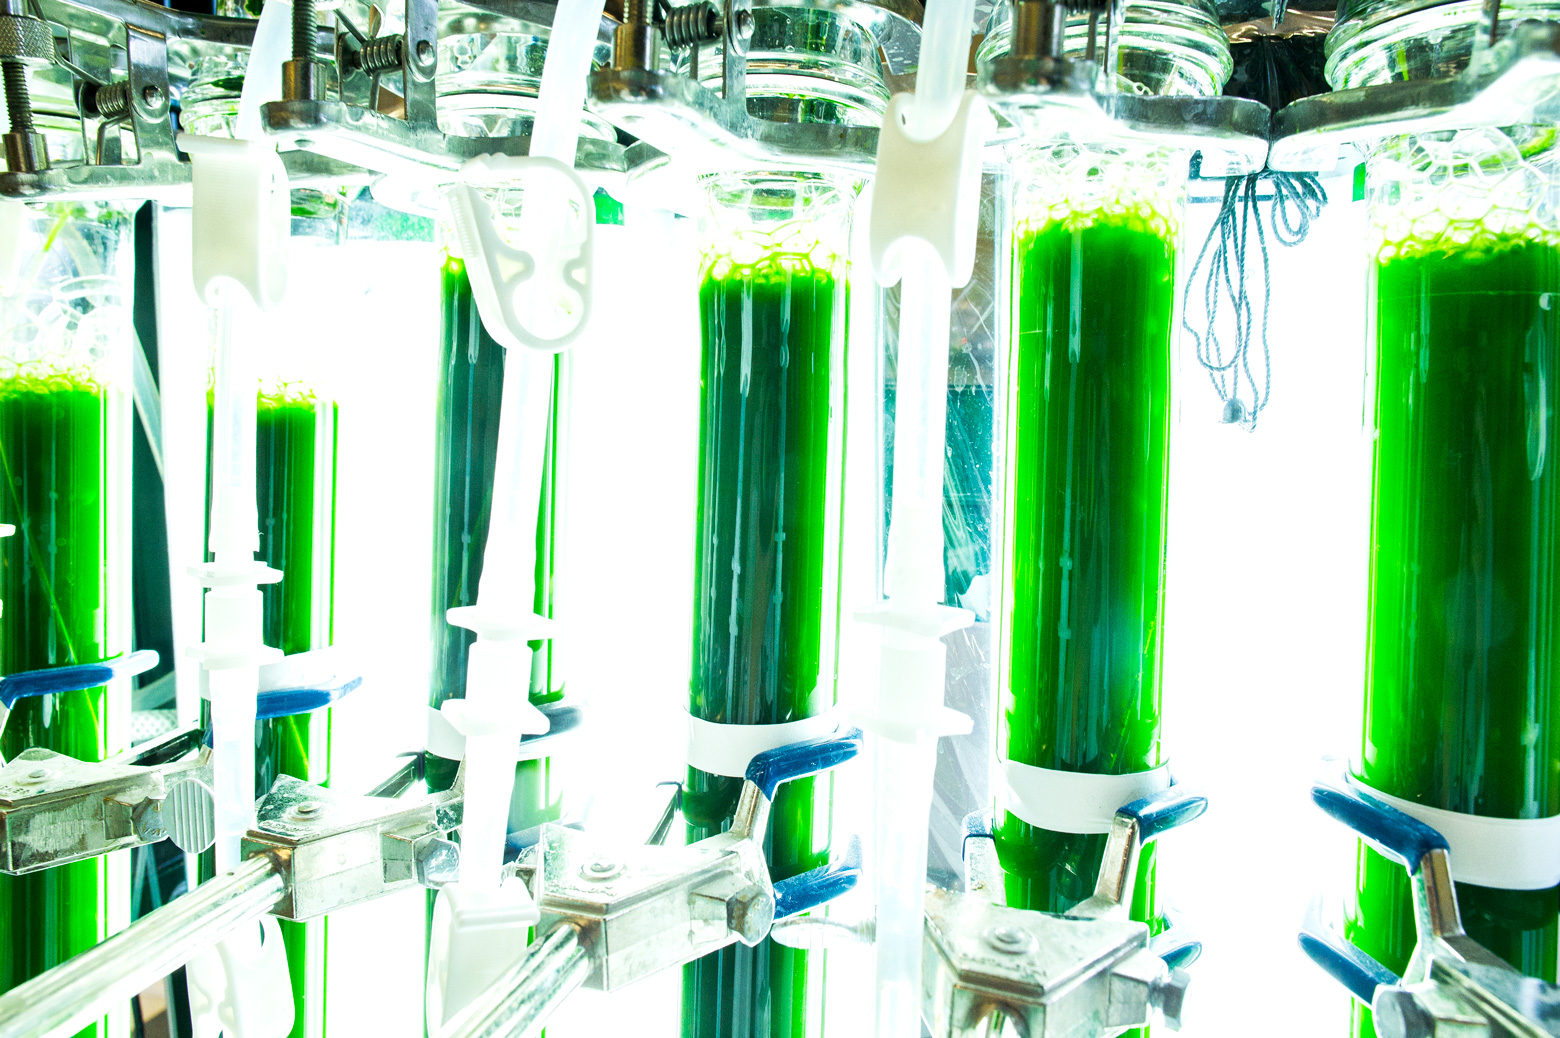 Live micro algae that is being introduced as a source of vegetable oils that can be used in the manufacturing of biodiesel fuel. Photo: Evan Dougherty